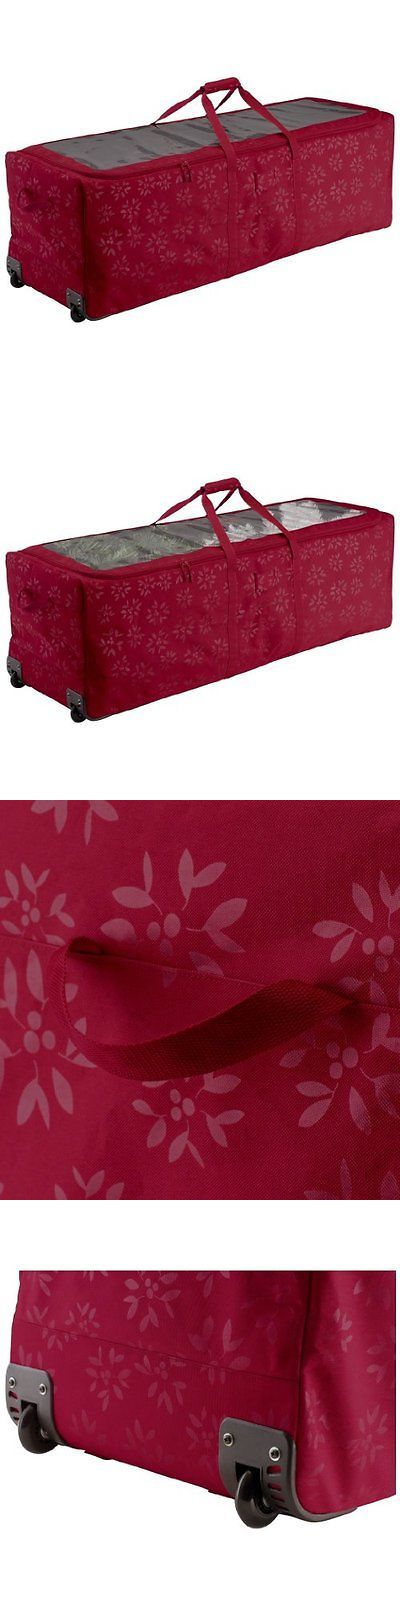 Tree Stands Skirts and Storage 166726: Artificial Christmas Tree Storage Bag Box Bin Rolling Container Tote Large Tub -> BUY IT NOW ONLY: $89.68 on eBay!